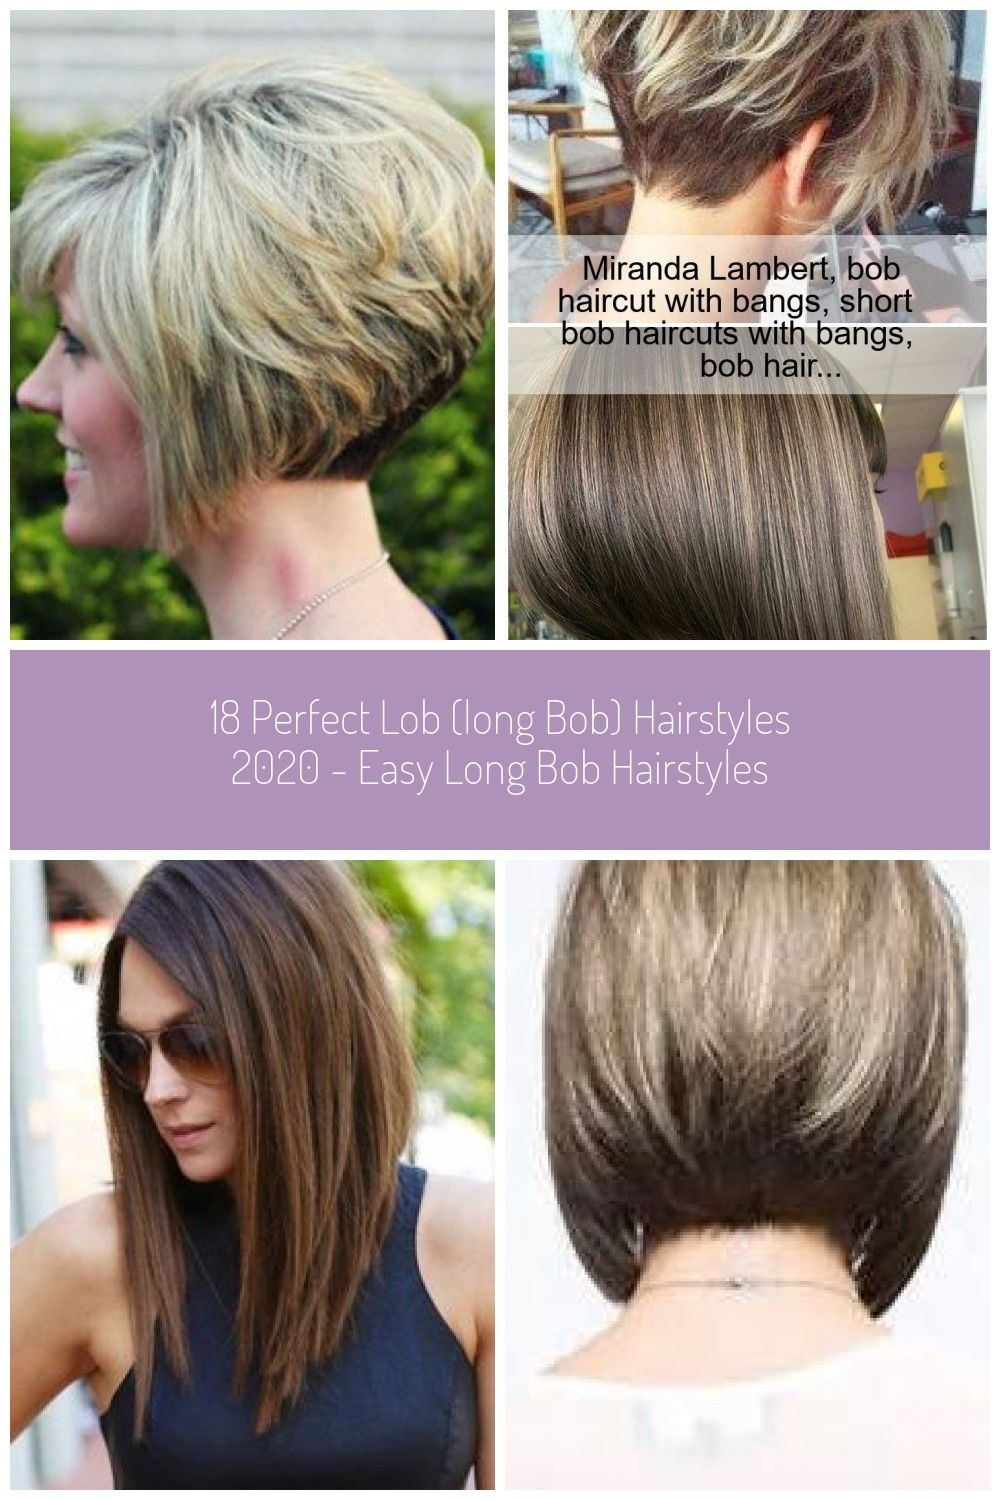 Gray Stacked Inverted Bob Bitte Besuchen Sie Unsere Website Fur Mehr Kurze Haarschnitt Fri In 2020 Long Bob Hairstyles Bob Haircut With Bangs Bob Haircut Back View